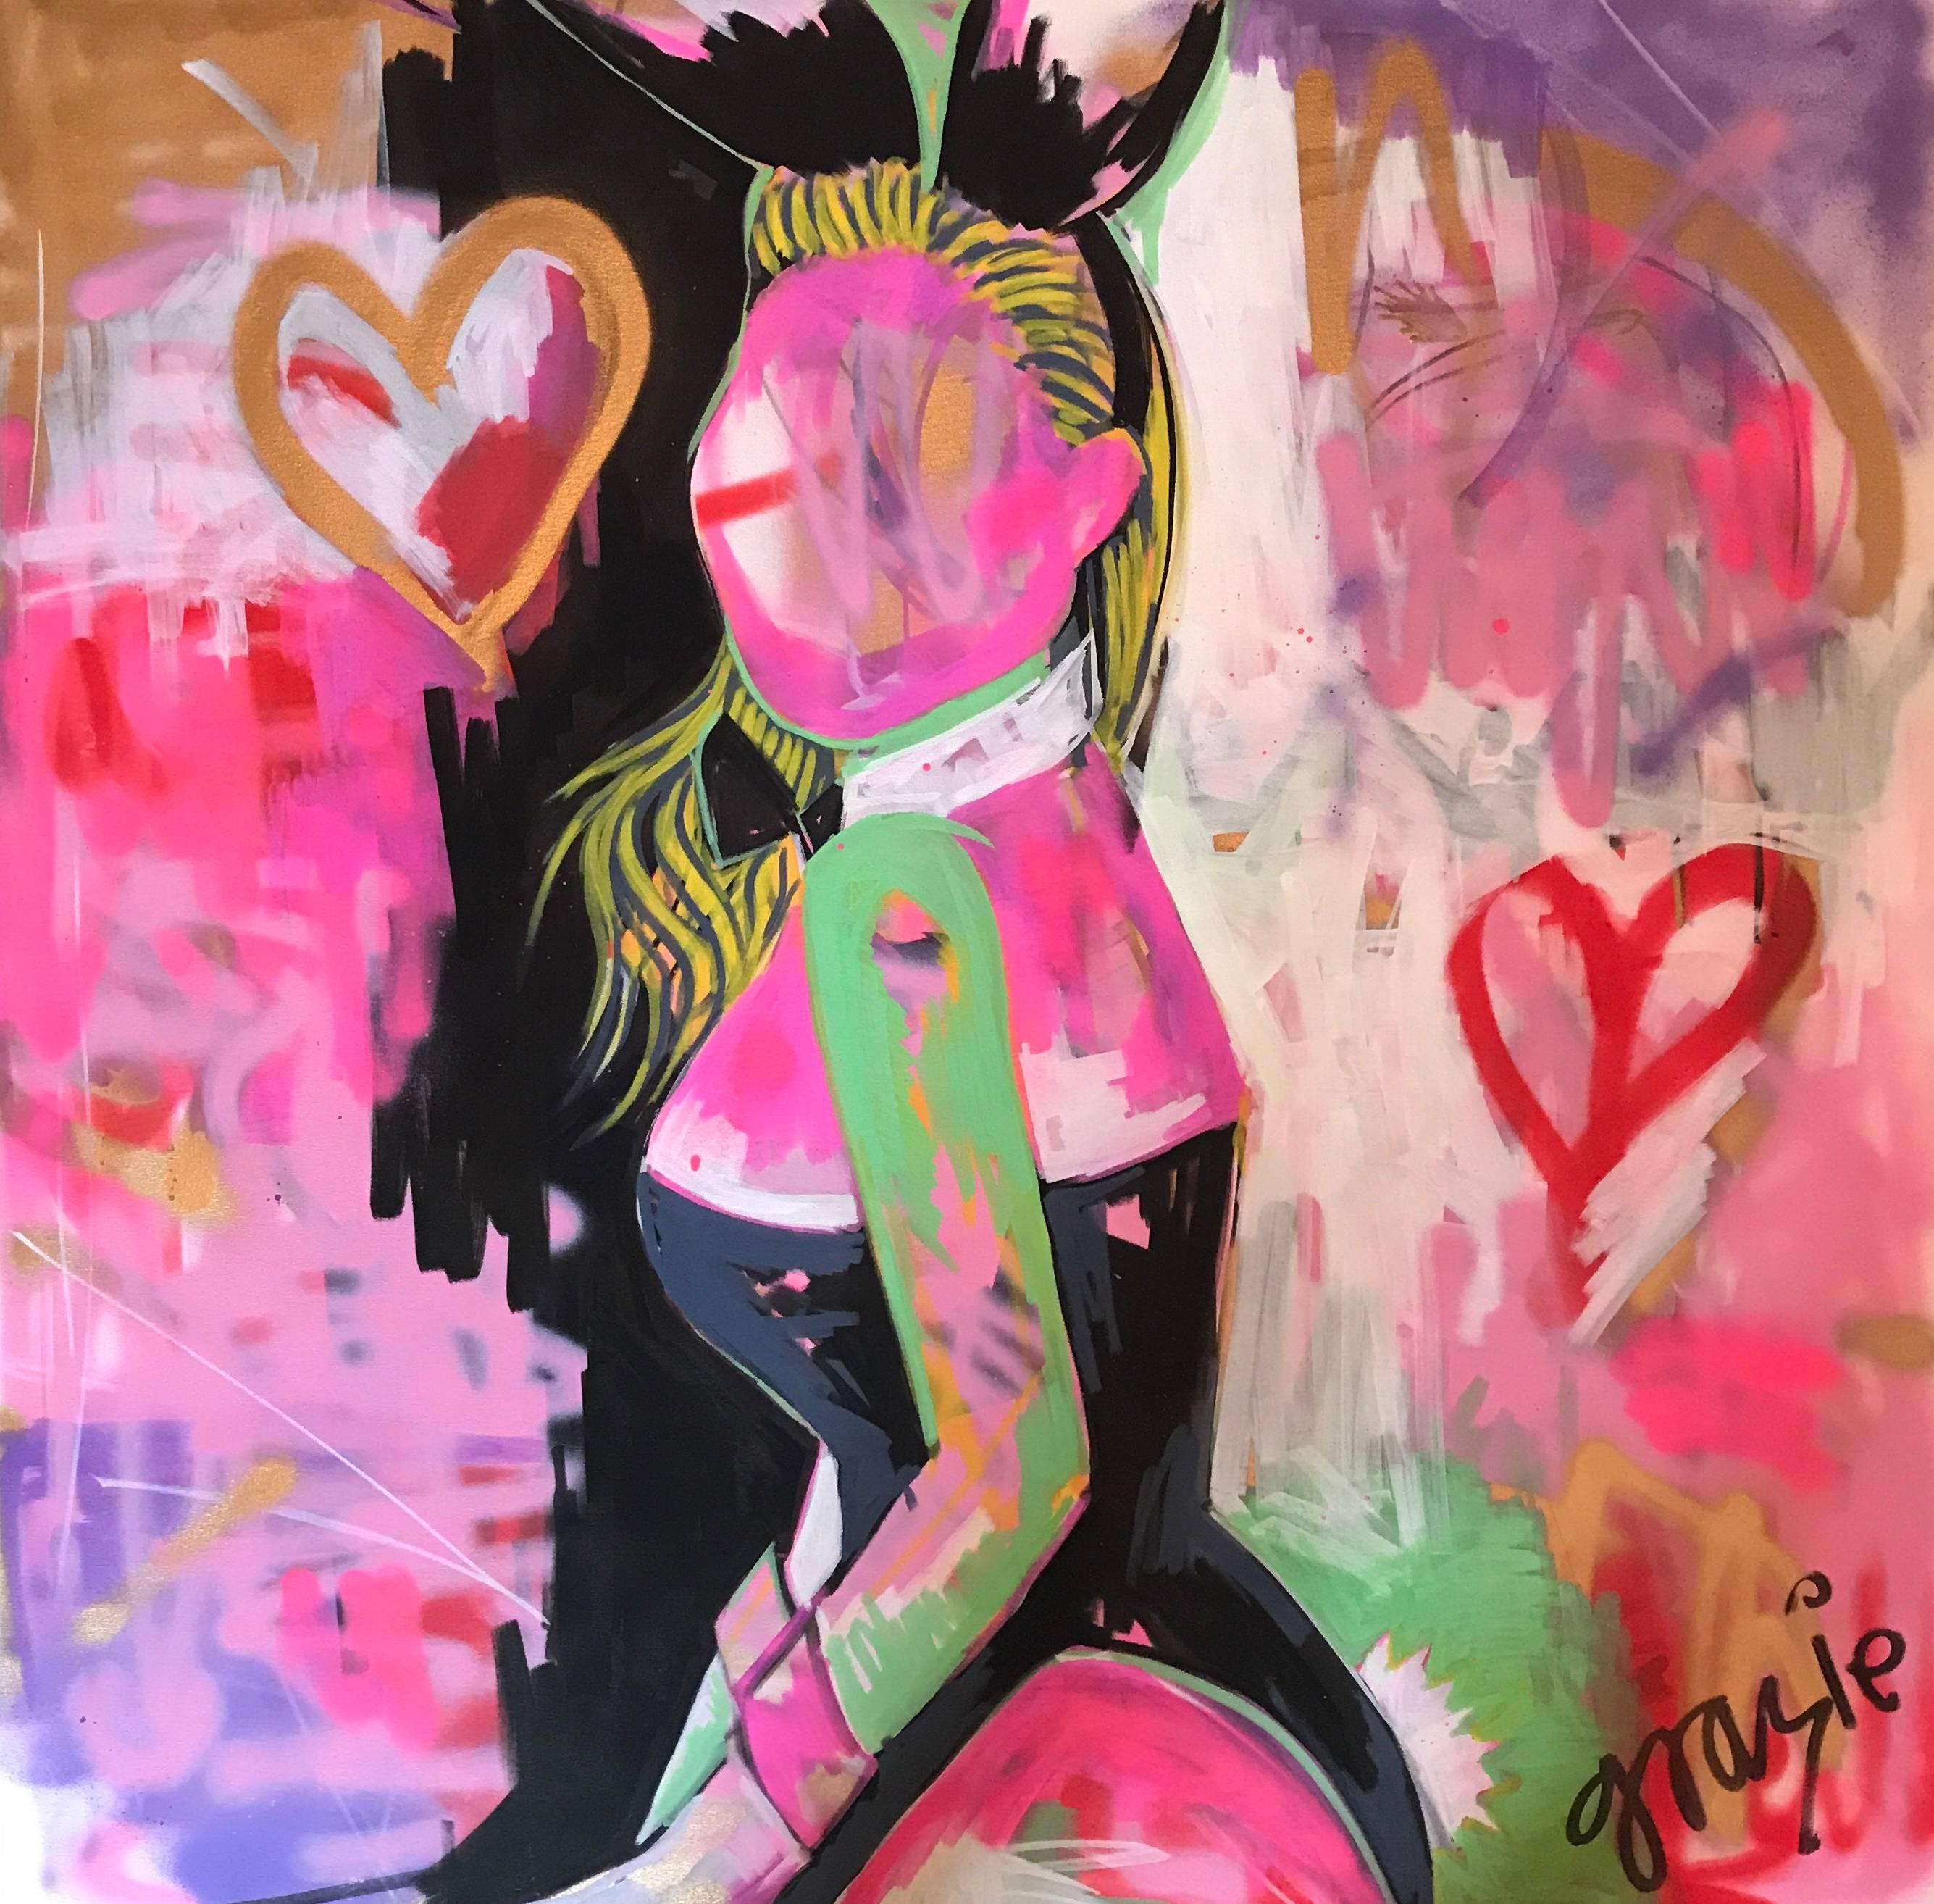 Everything but the Bunny. Bunny Girl, HeartsOriginal. Acyrlic on Canvas, Signed.